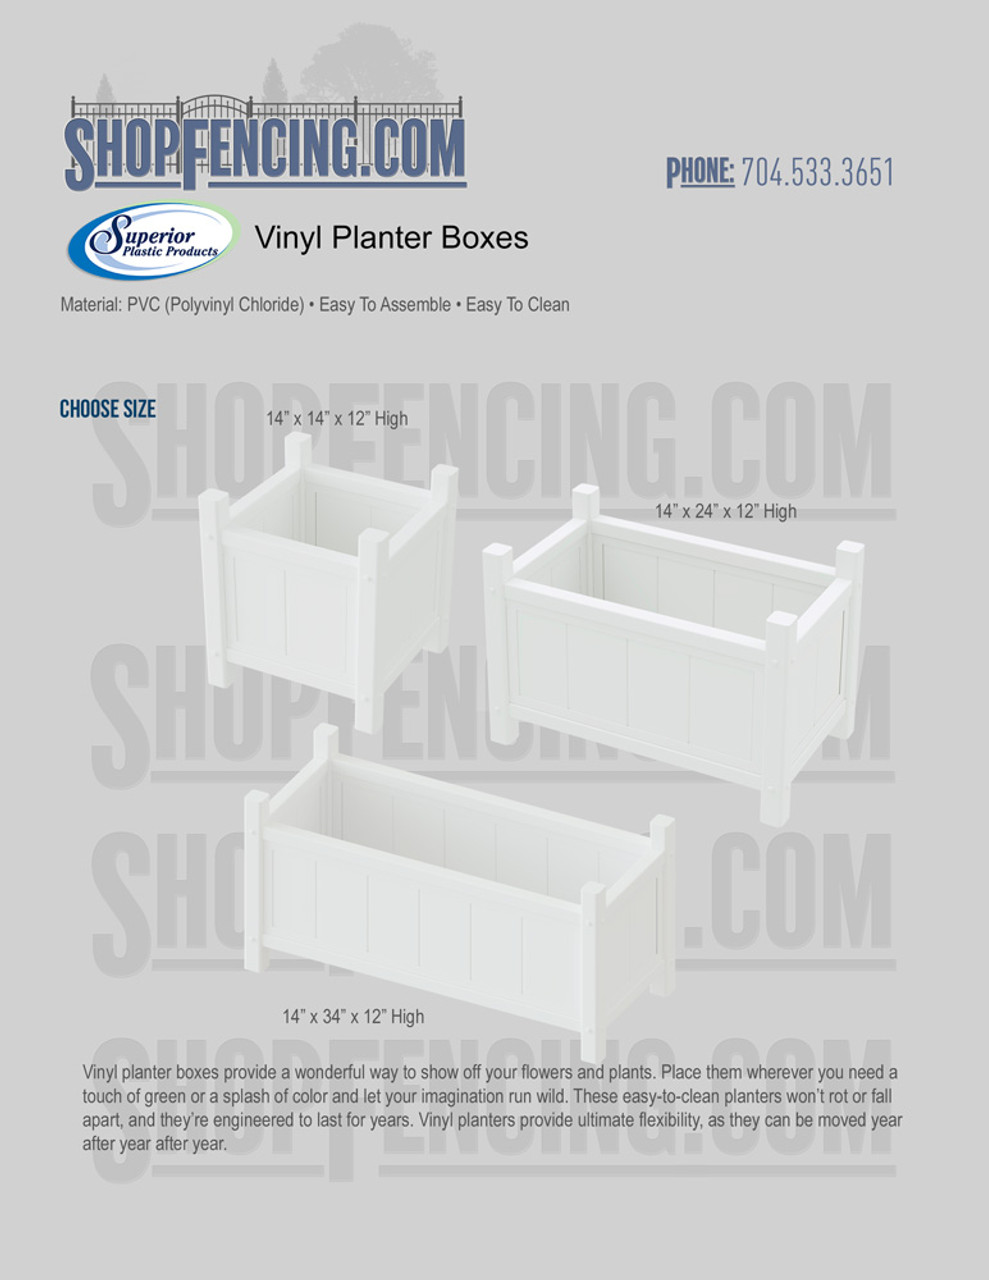 Vinyl Planter Boxes From ShopFencing.com